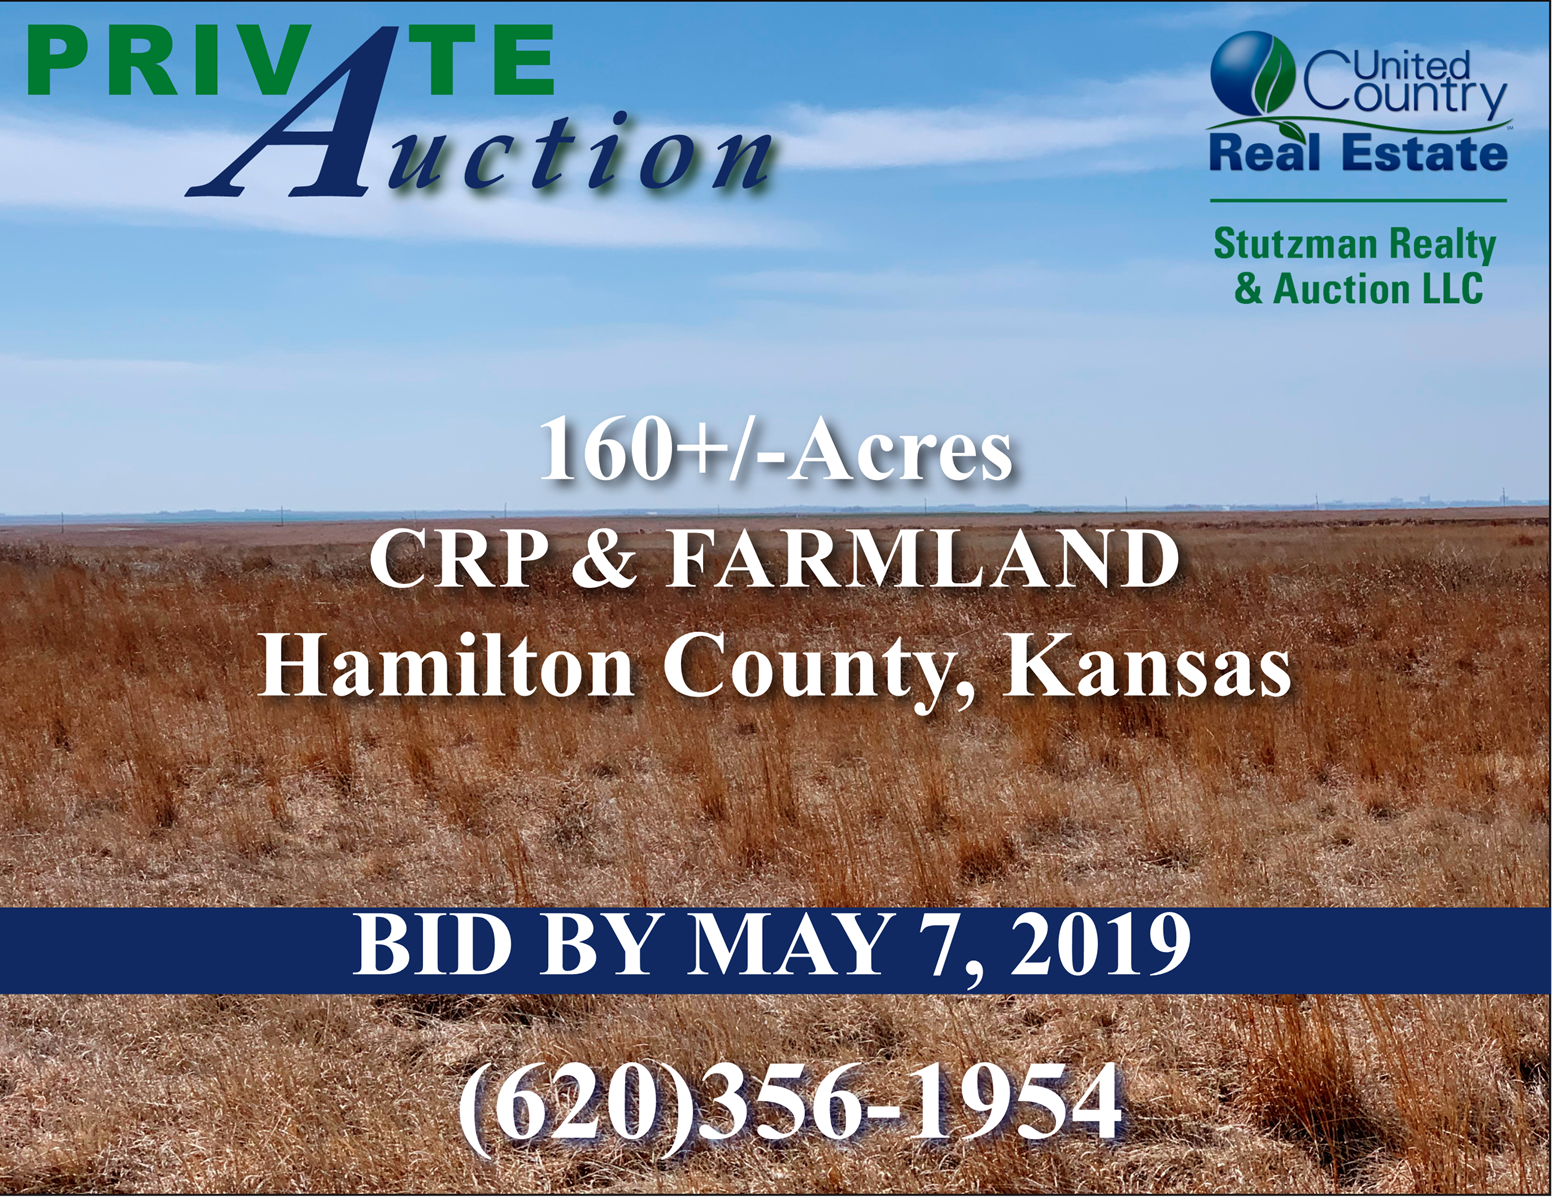 HAMILTON COUNTY, KS 160+/- ACRE CRP & FARMLAND ABSOLUTE AUCTION